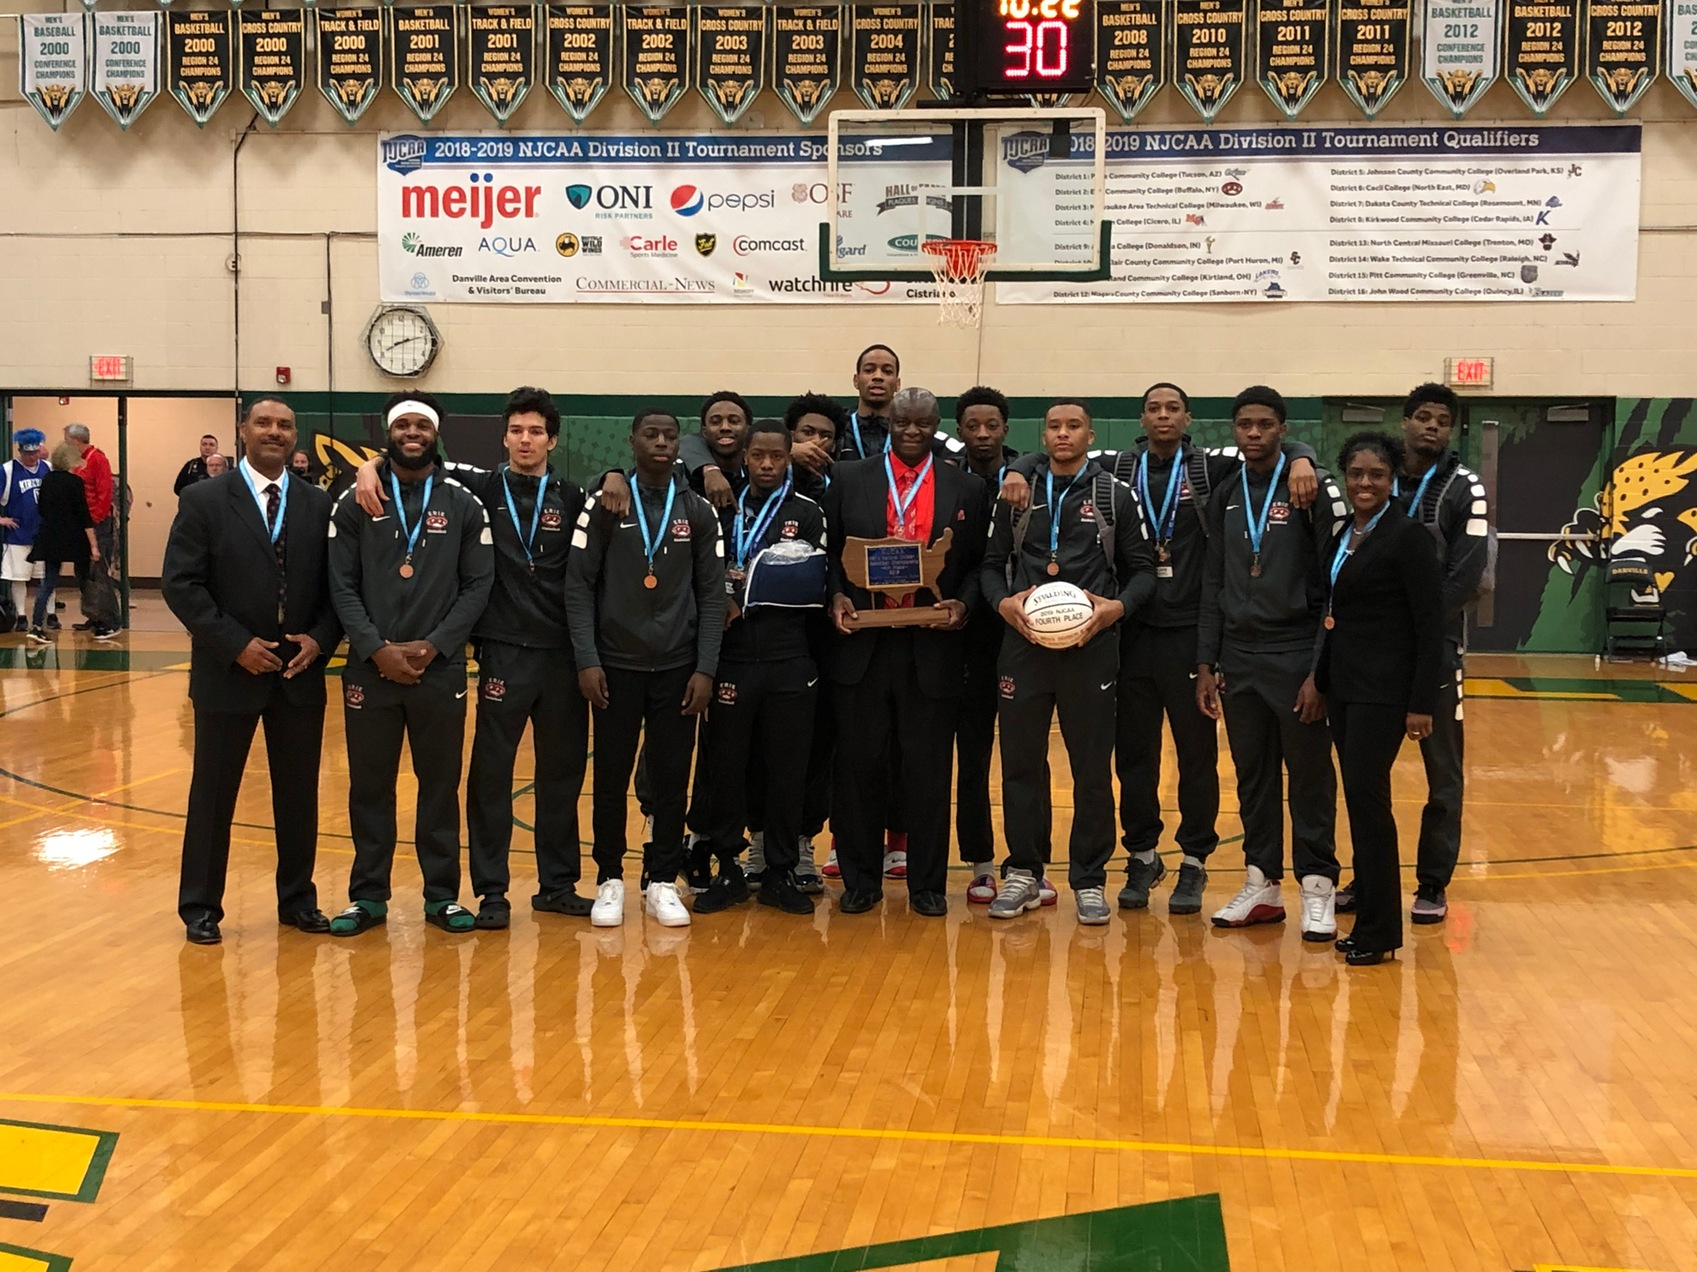 Men's Basketball Finishes Fourth at NJCAA Division II Tournament